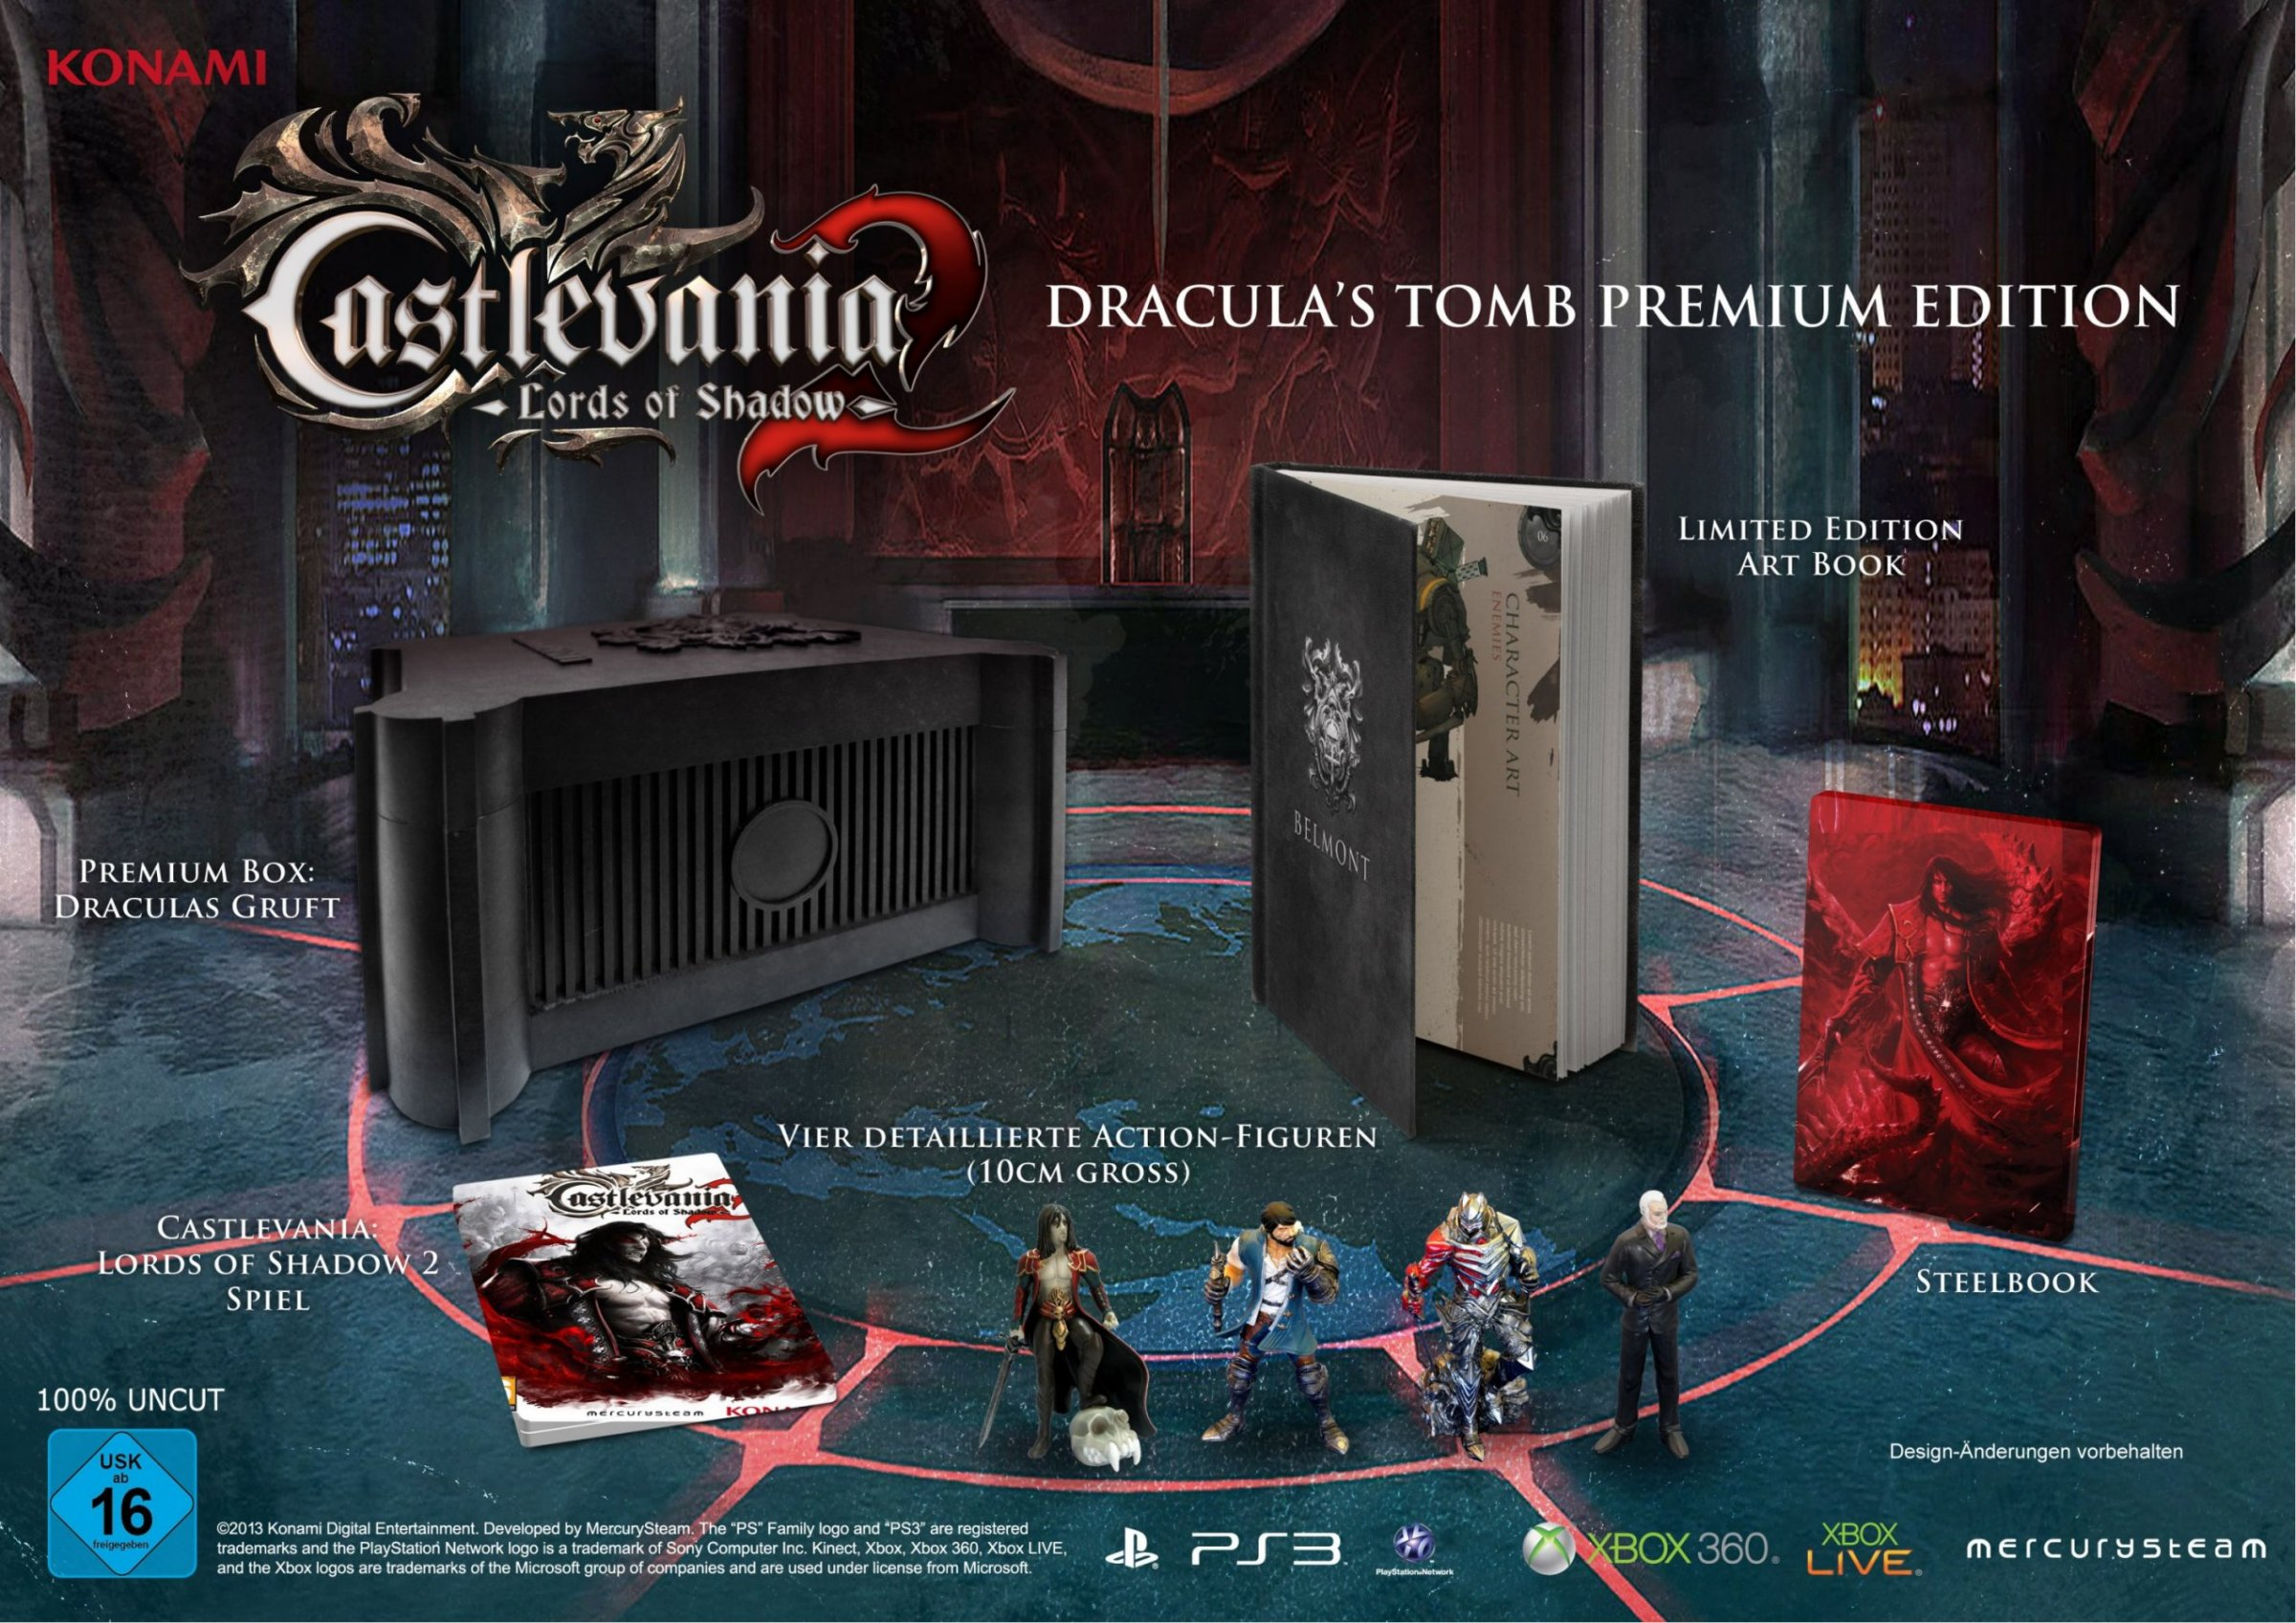 castlevania-lords-of-shadow-2-usk-freigabe-ab-16-jahren-mit-packshots-collectors-edition